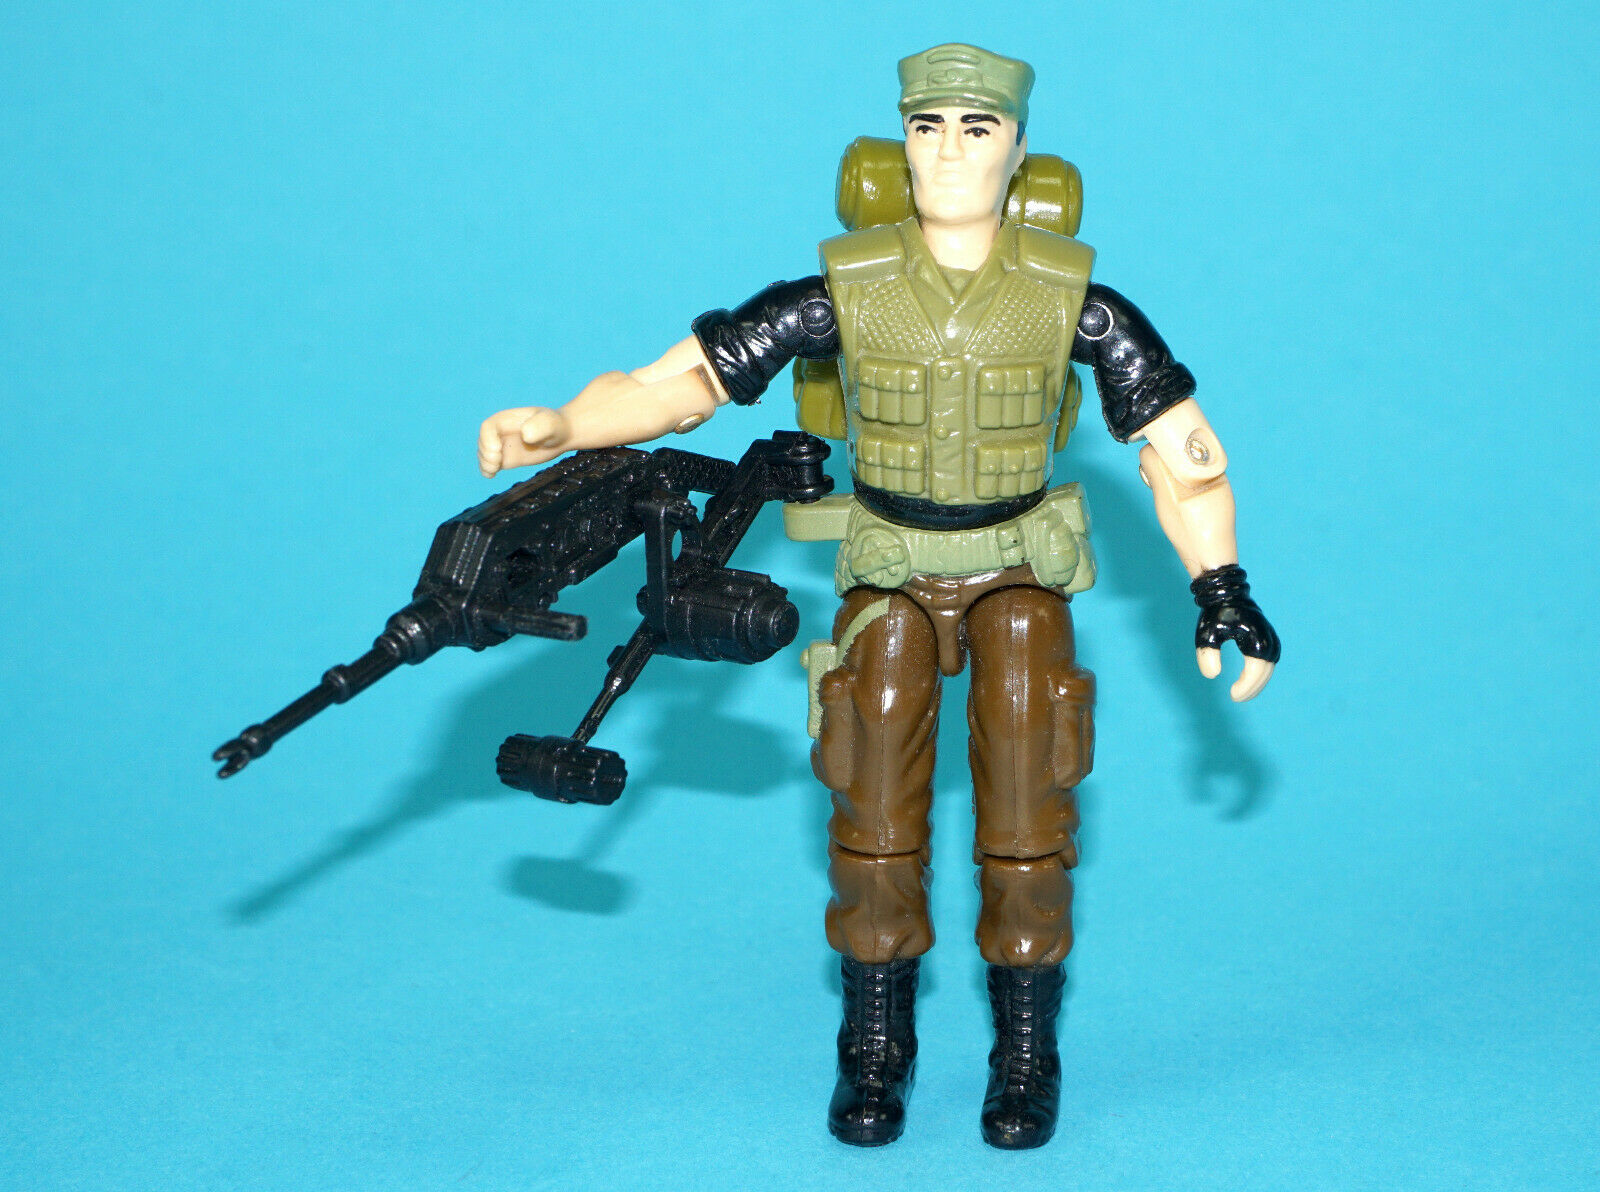 1989 GI JOE NIGHT FORCE REPEATER v2 100% COMPLETE C9+ UNCRACKED ELBOWS HASBRO